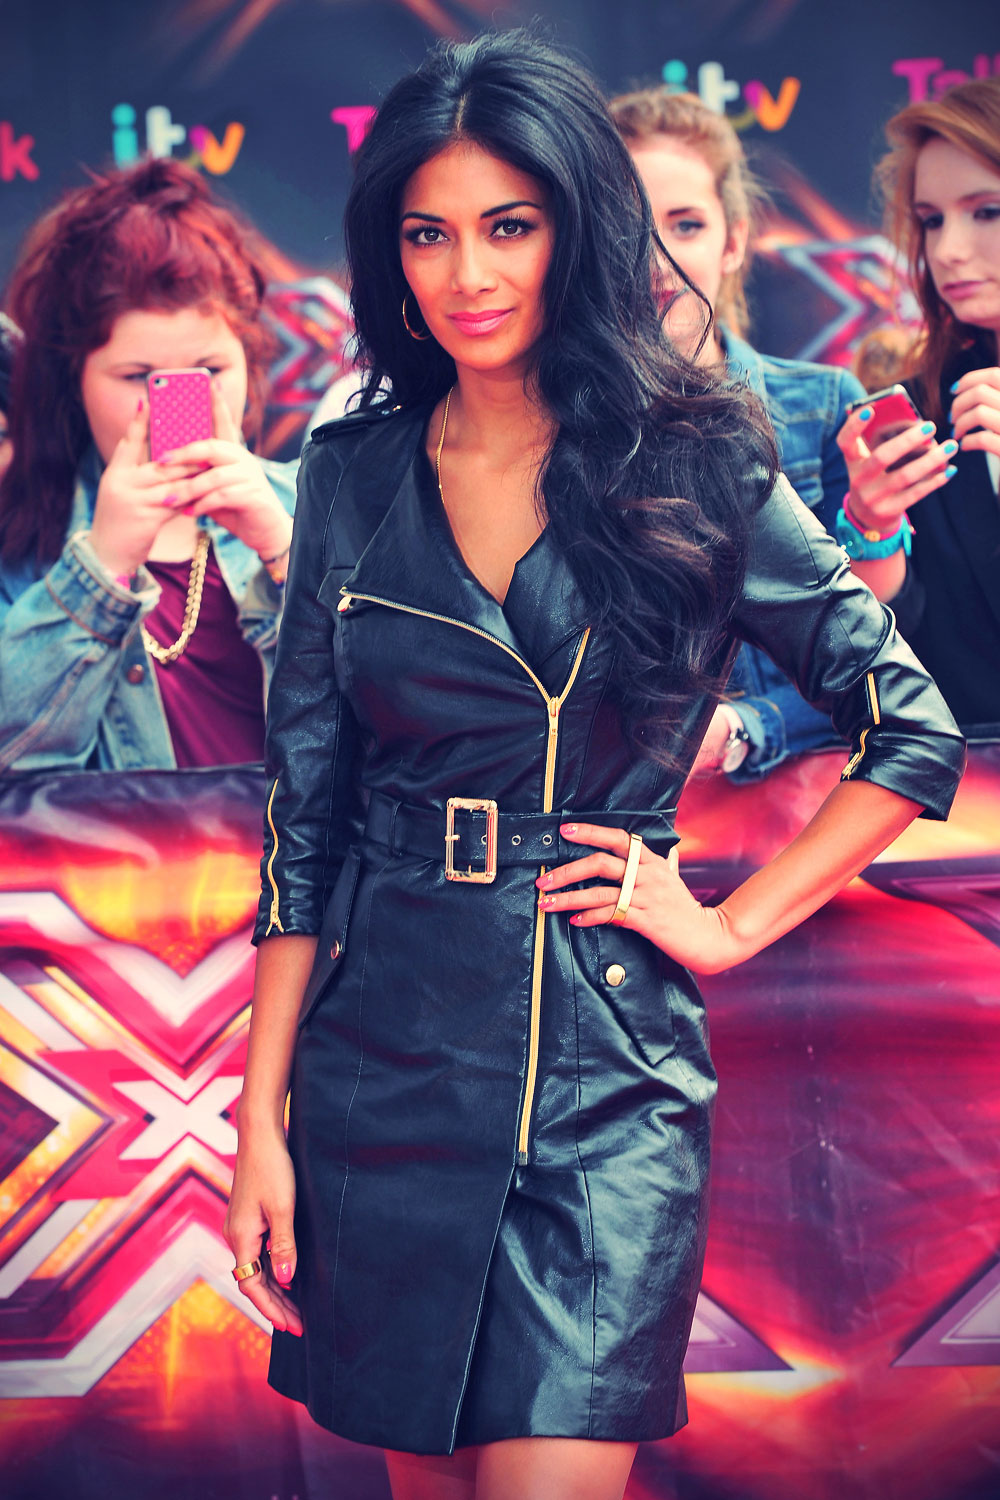 Nicole Scherzinger at Red Carpet arrivals for The X Factor